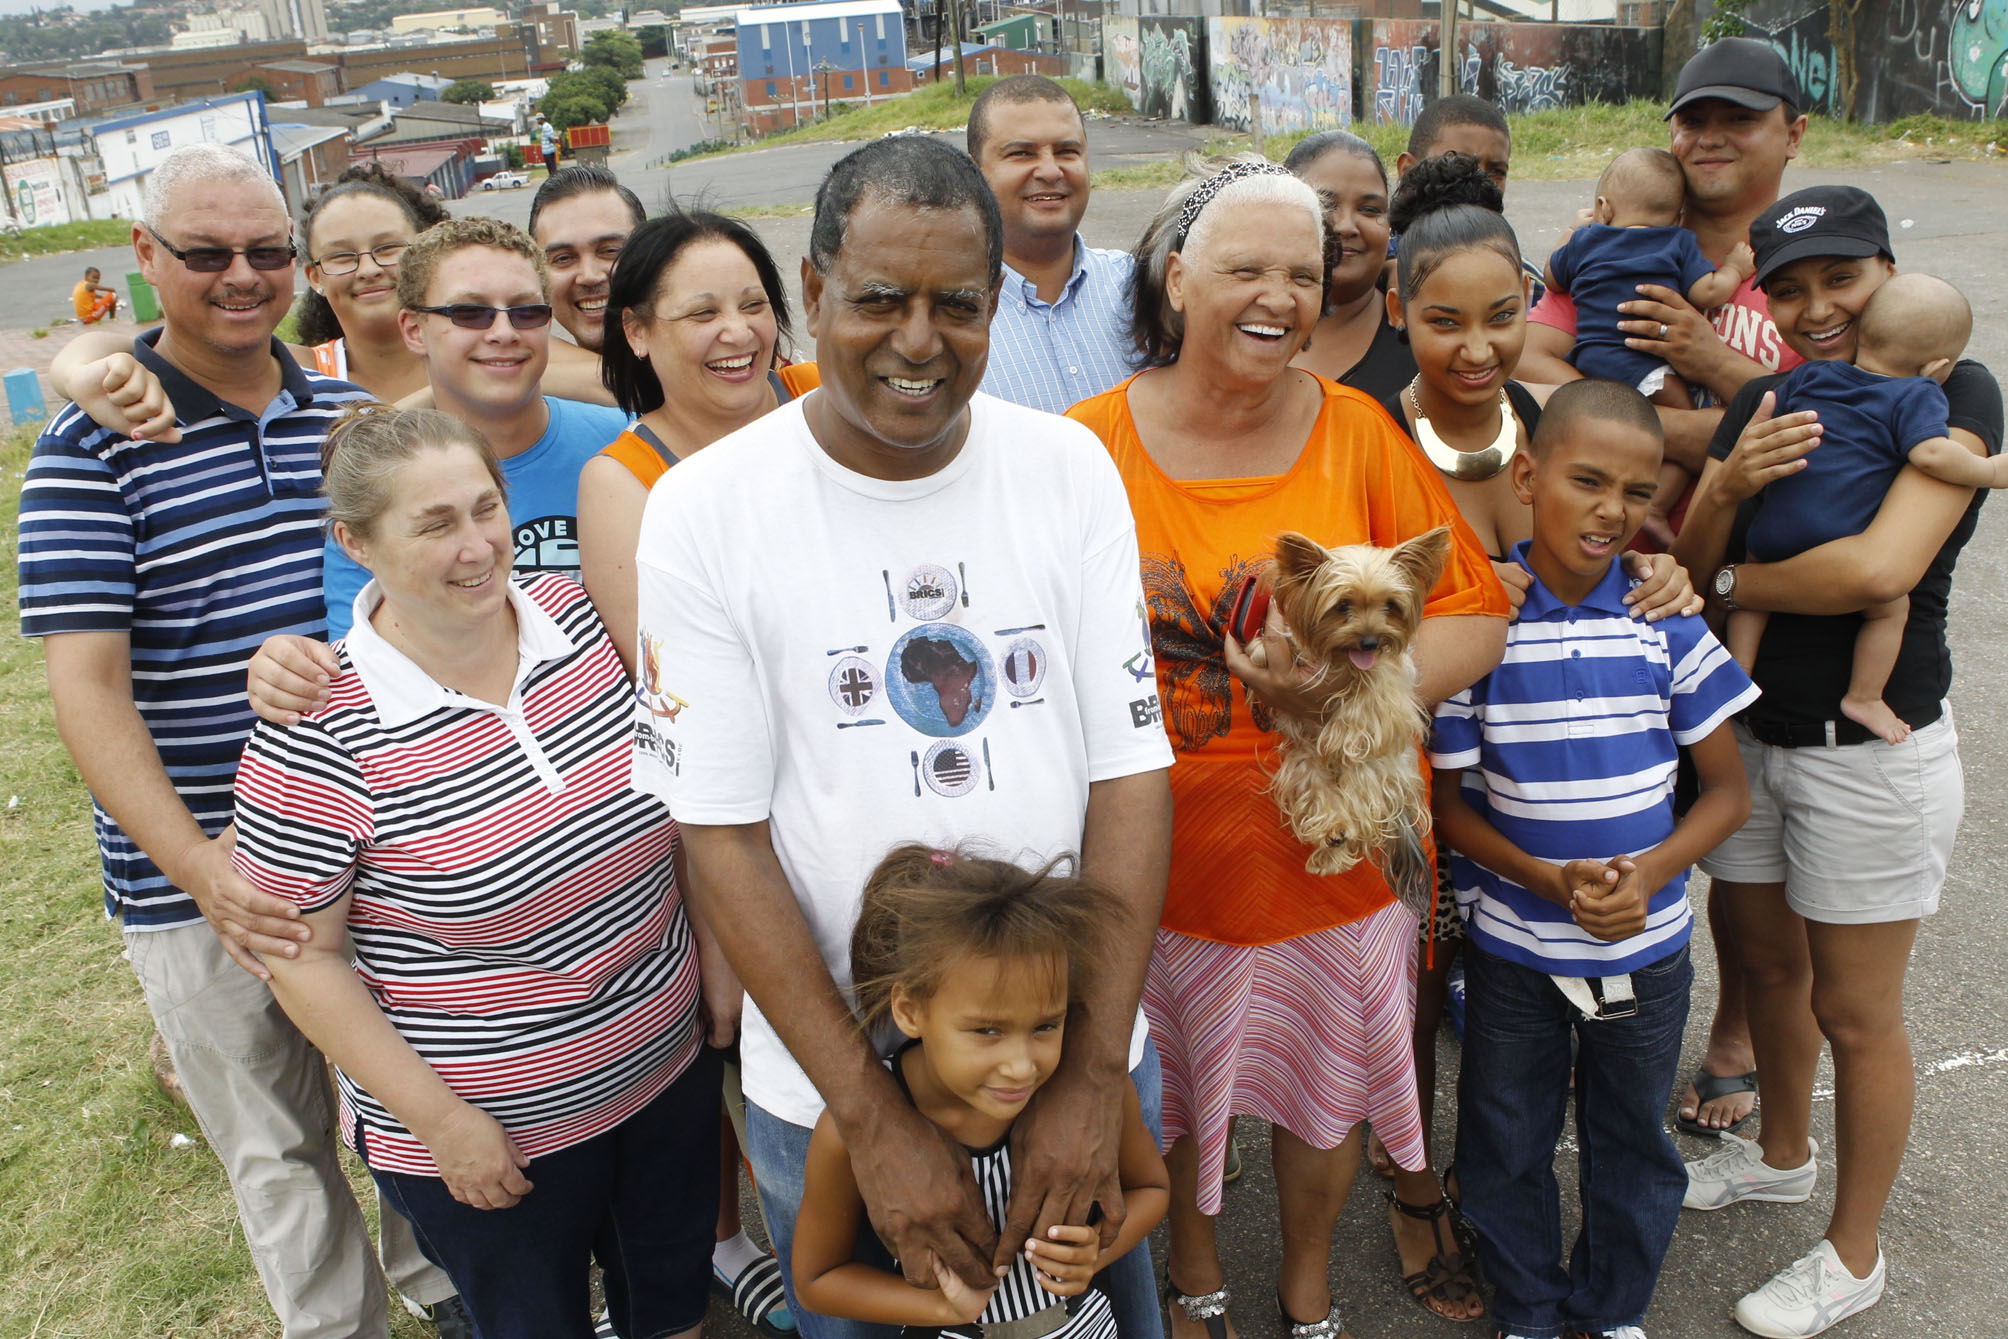 Desmond D'Sa and member os his extended family - south Durban.